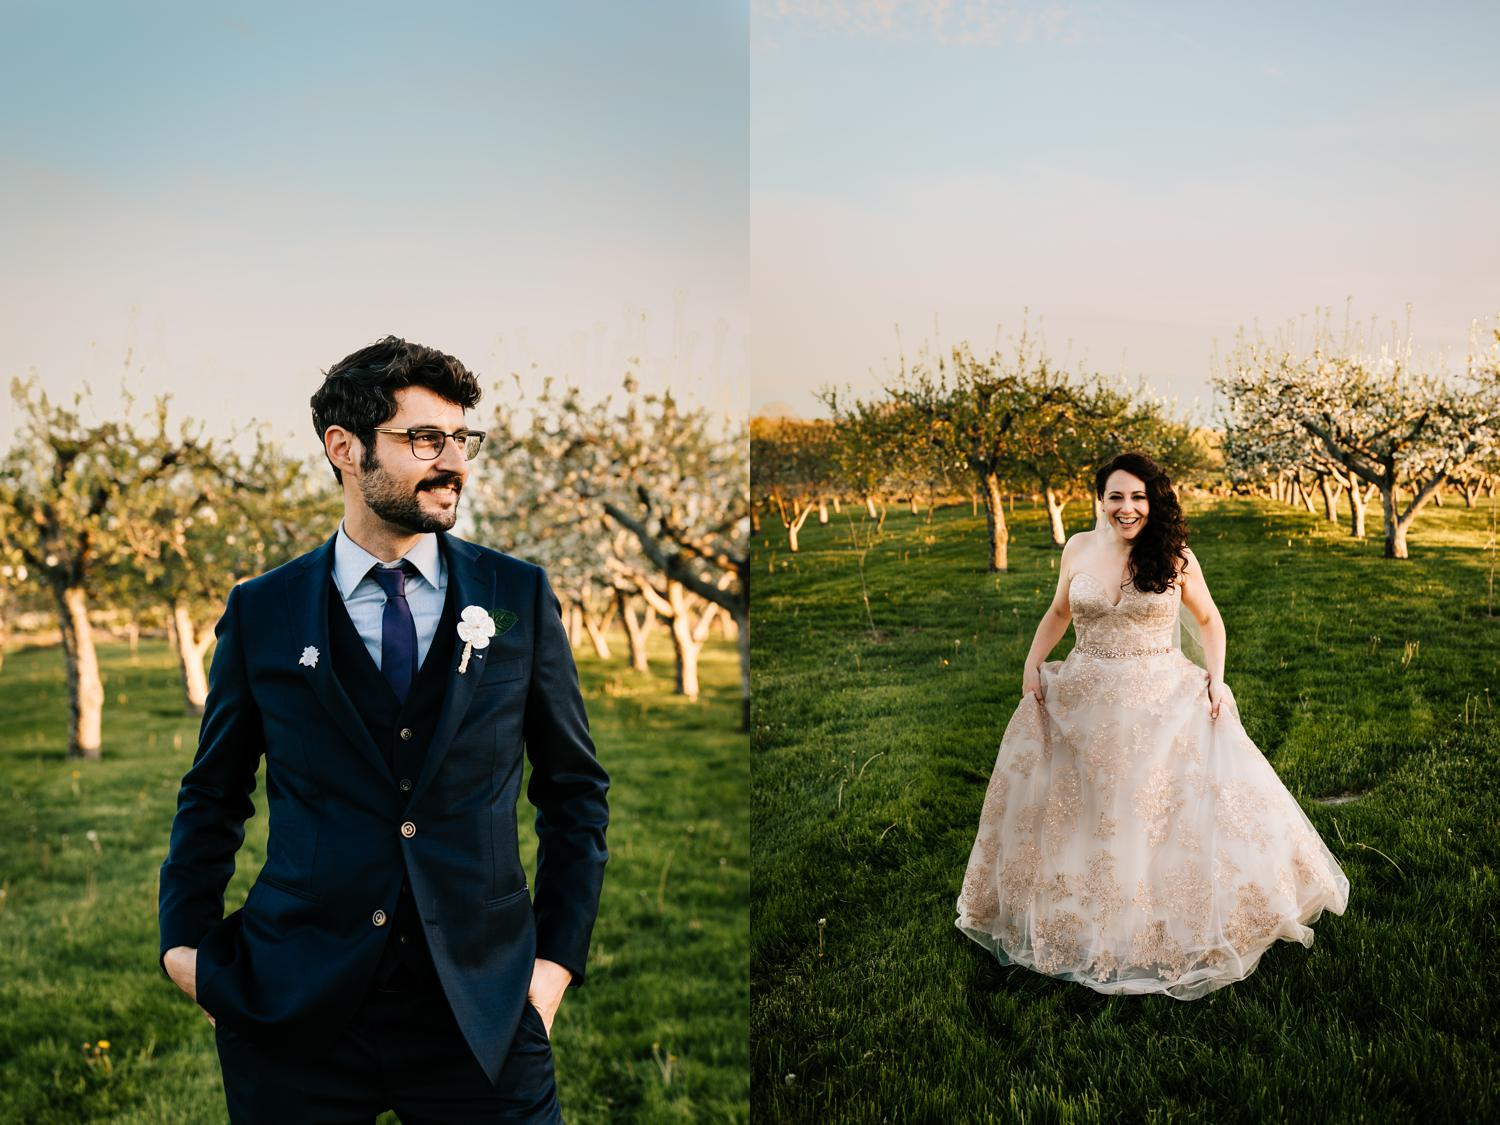 Bride and groom portraits in cherry blossom field in Santa Fe